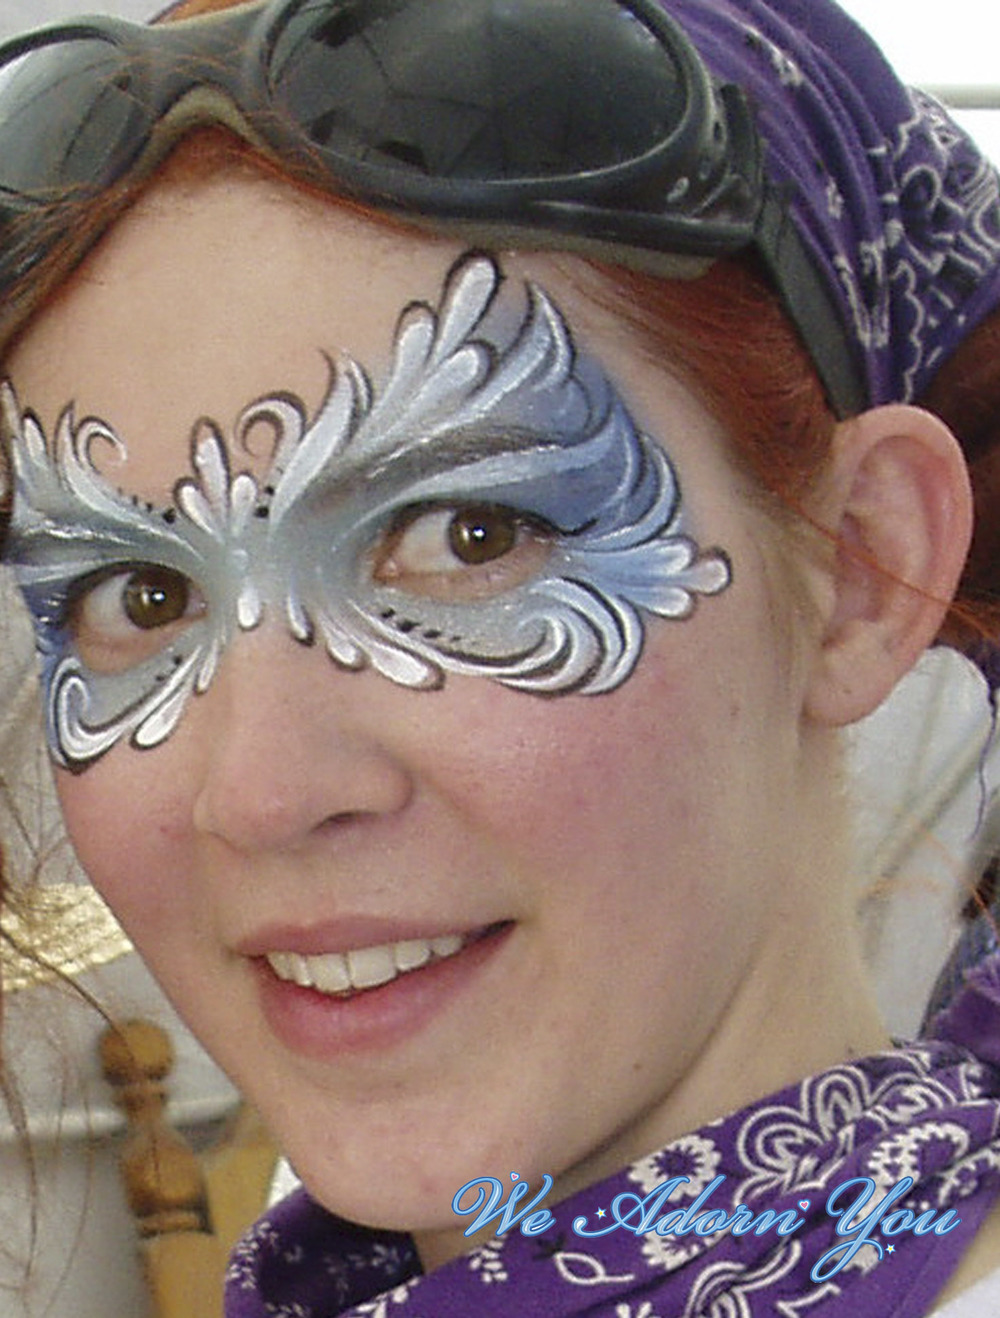 Face Painting Burning Man Mask - We Adorn You.jpg